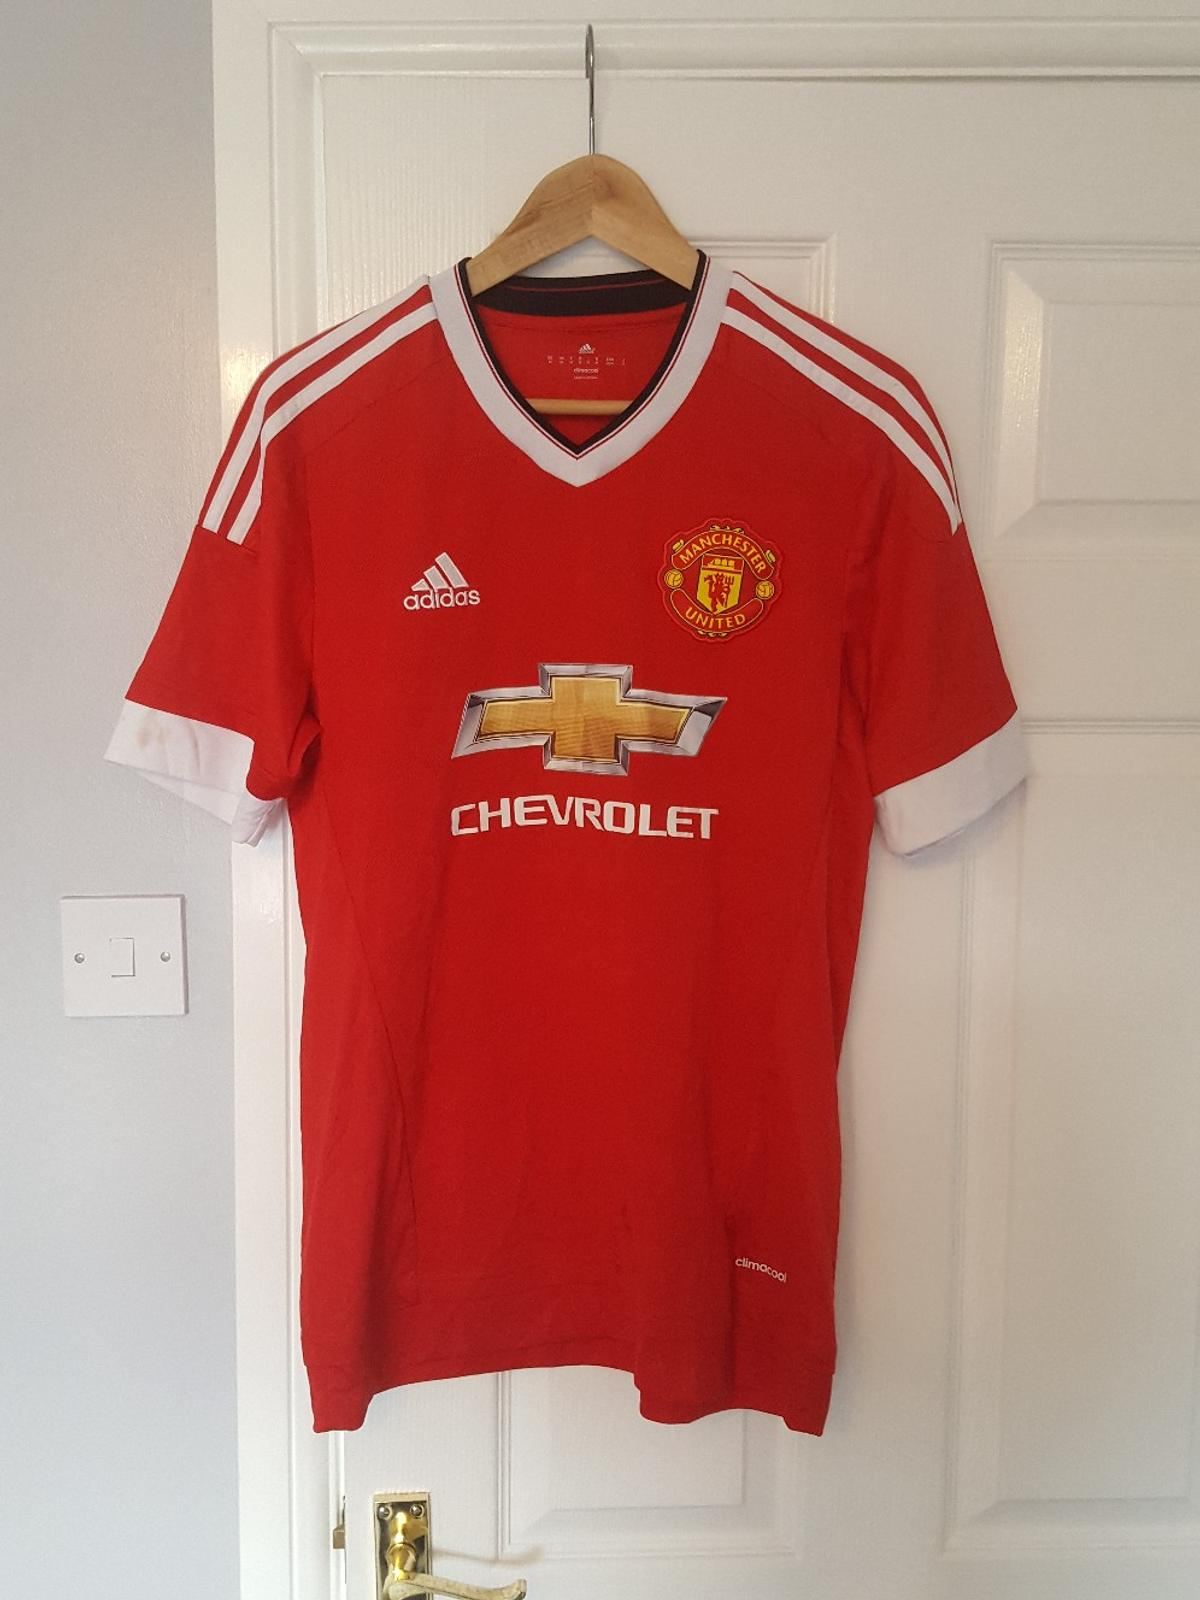 reputable site 9724e 84e07 Man Utd Football Shirt SCHWEINSTEIGER 31 Med